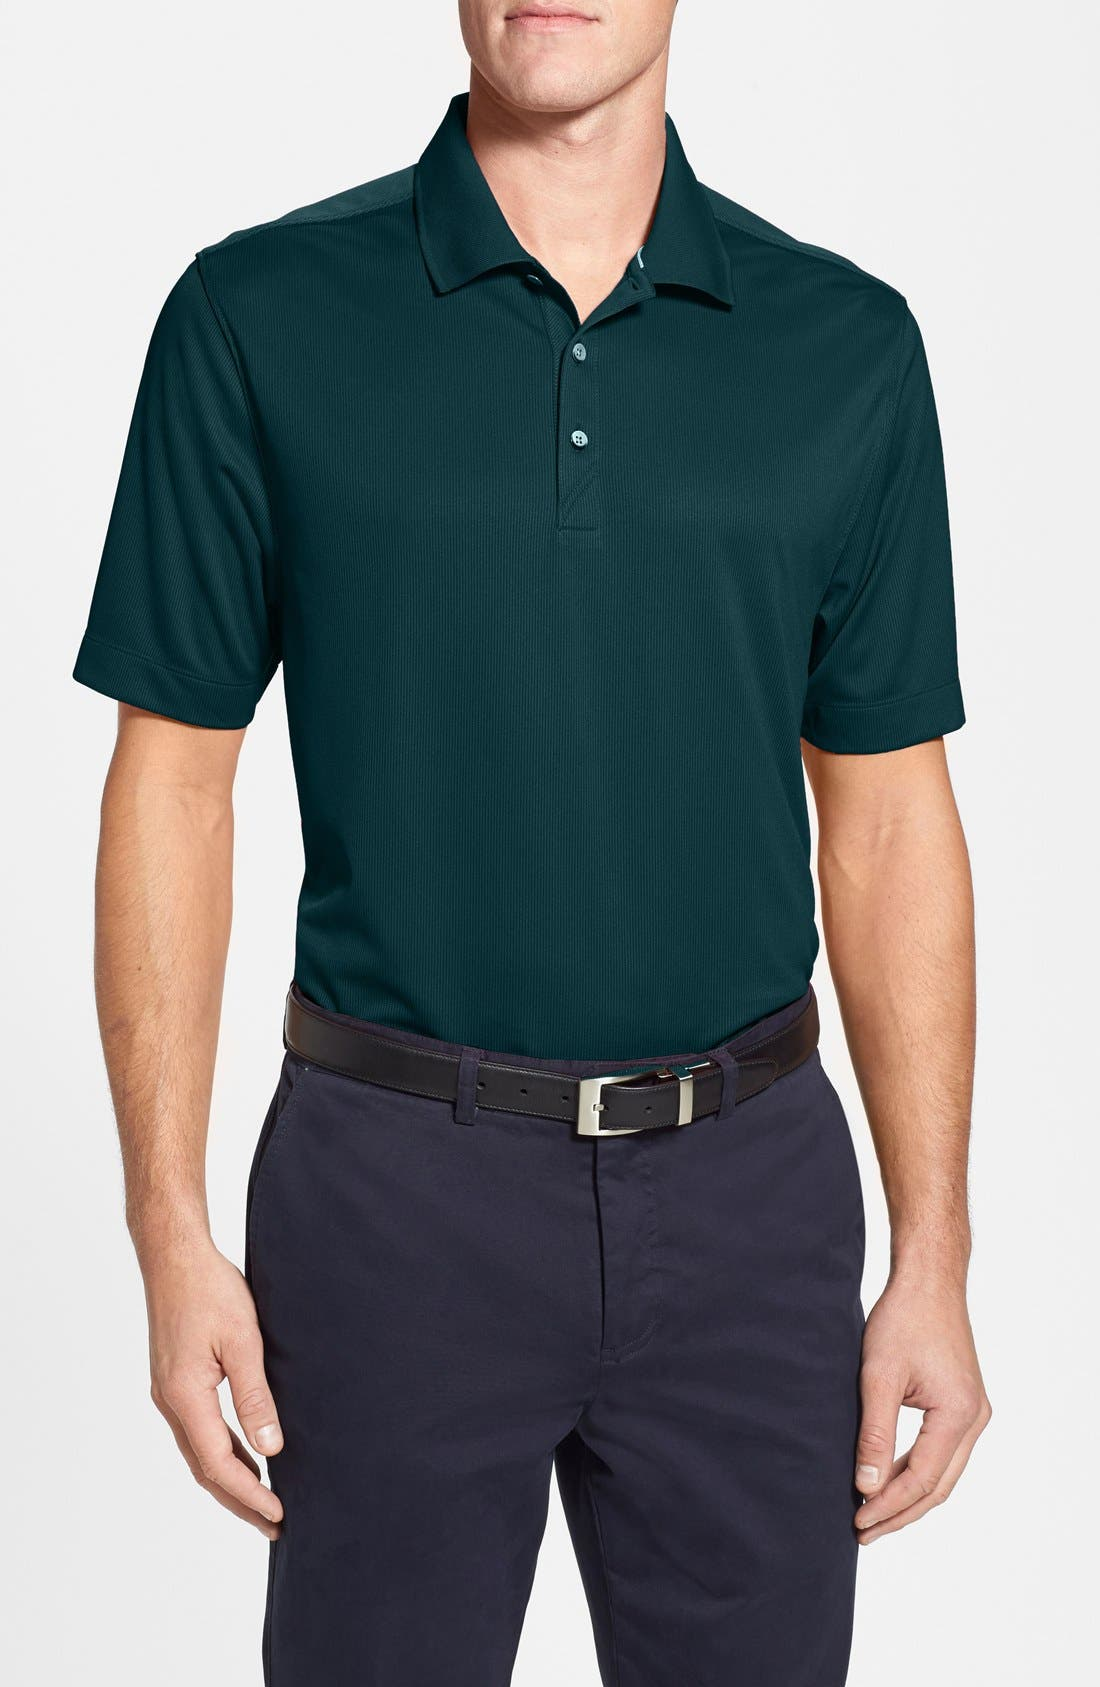 Glendale DryTec Moisture Wicking Polo,                         Main,                         color, Midnight Green